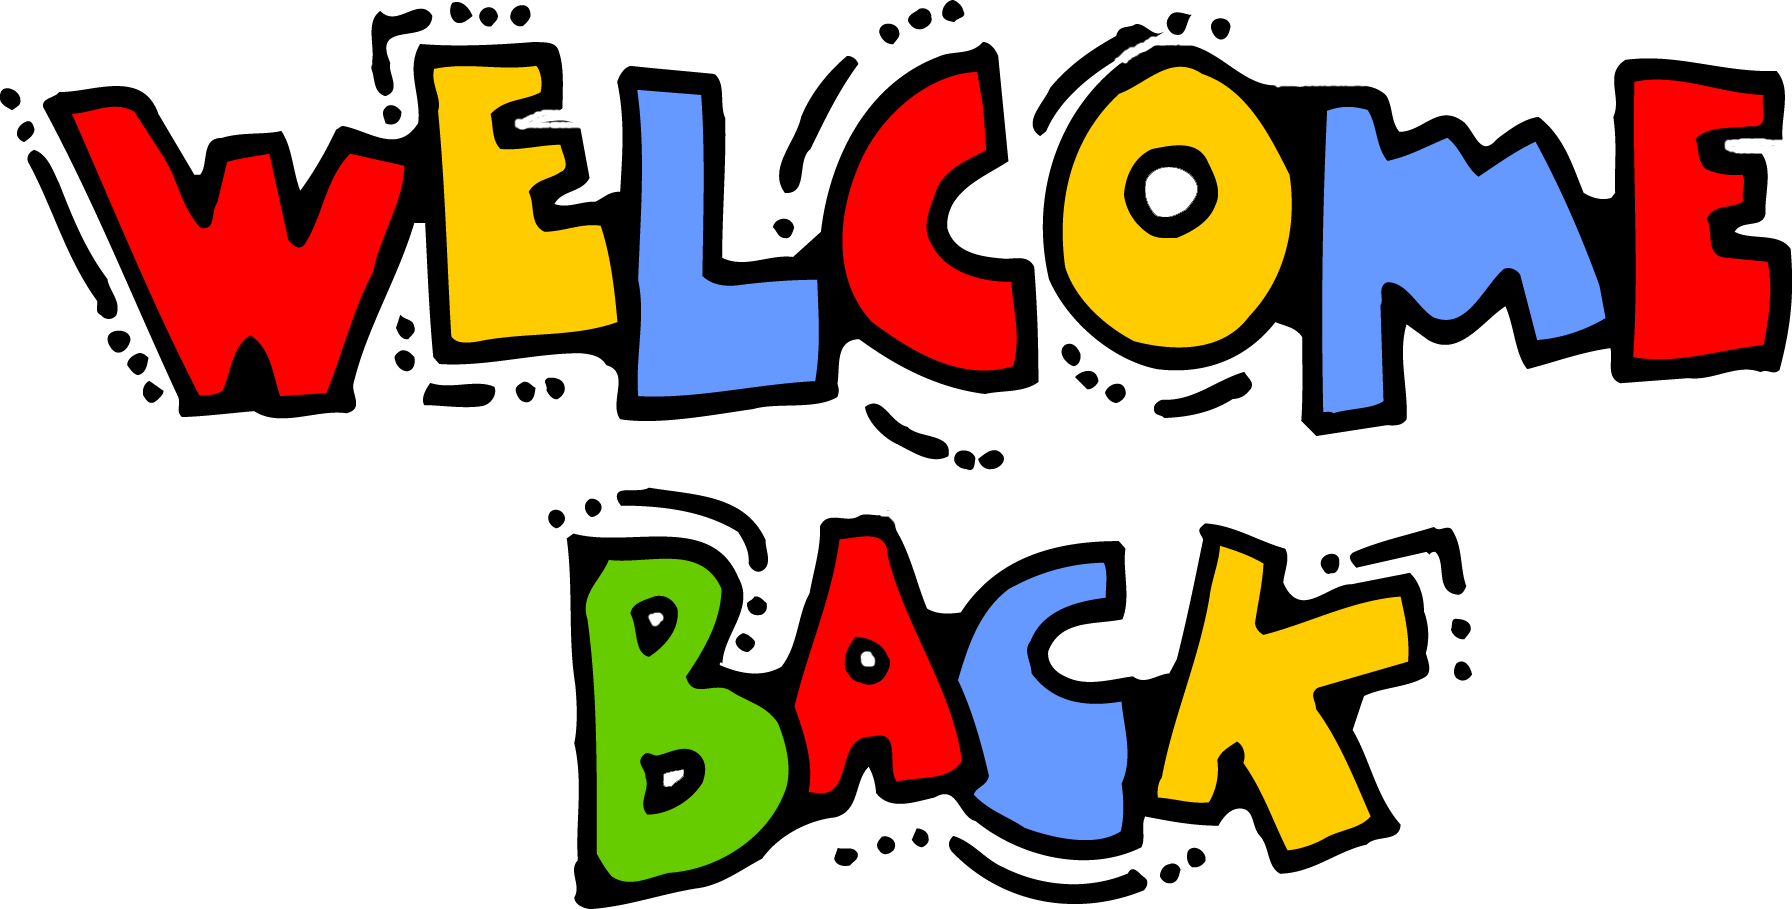 Website welcome home sign